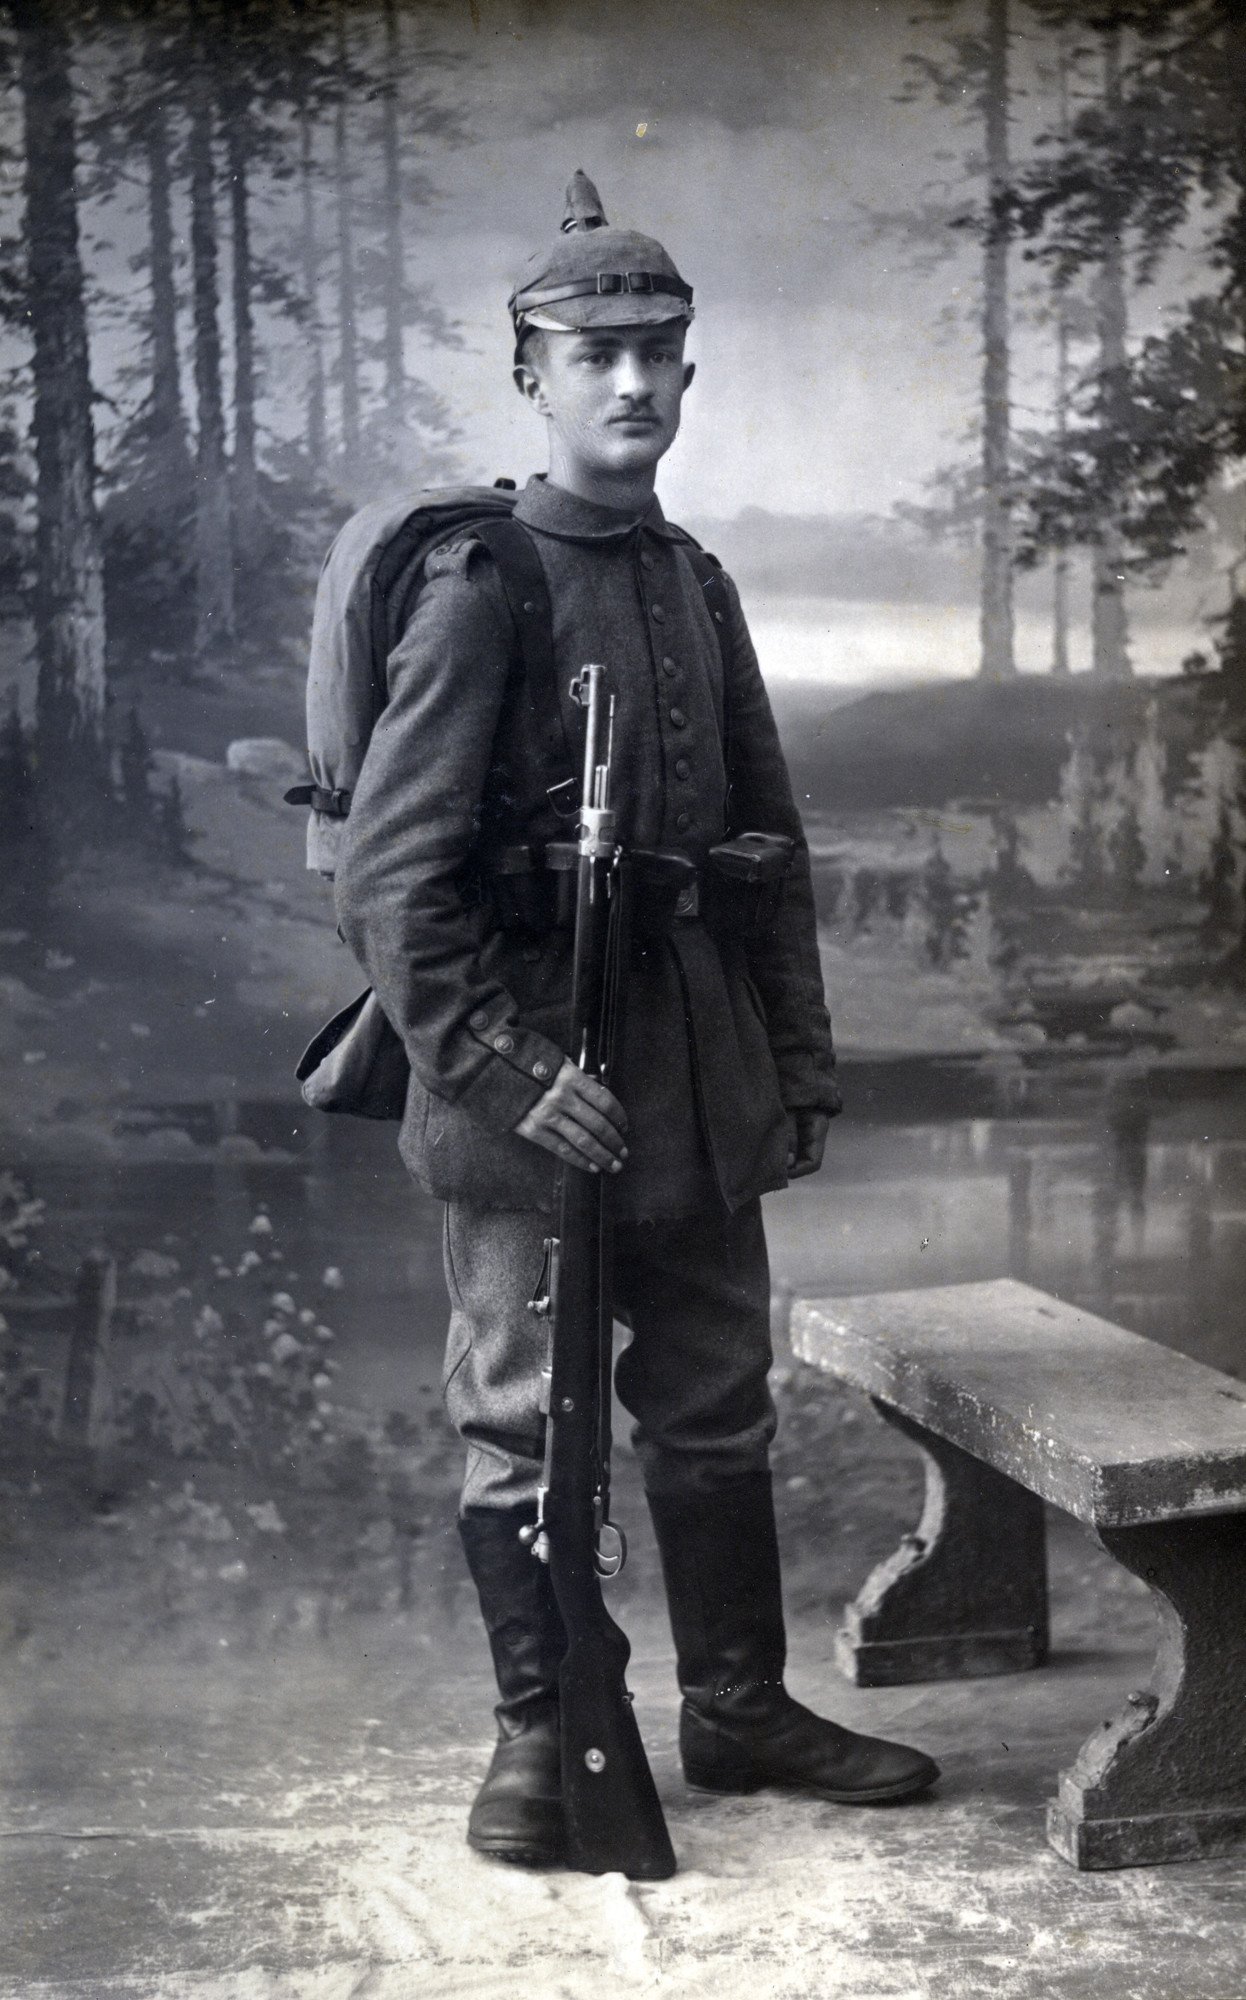 Portrait of Georg Spiro in the German army in WWI.